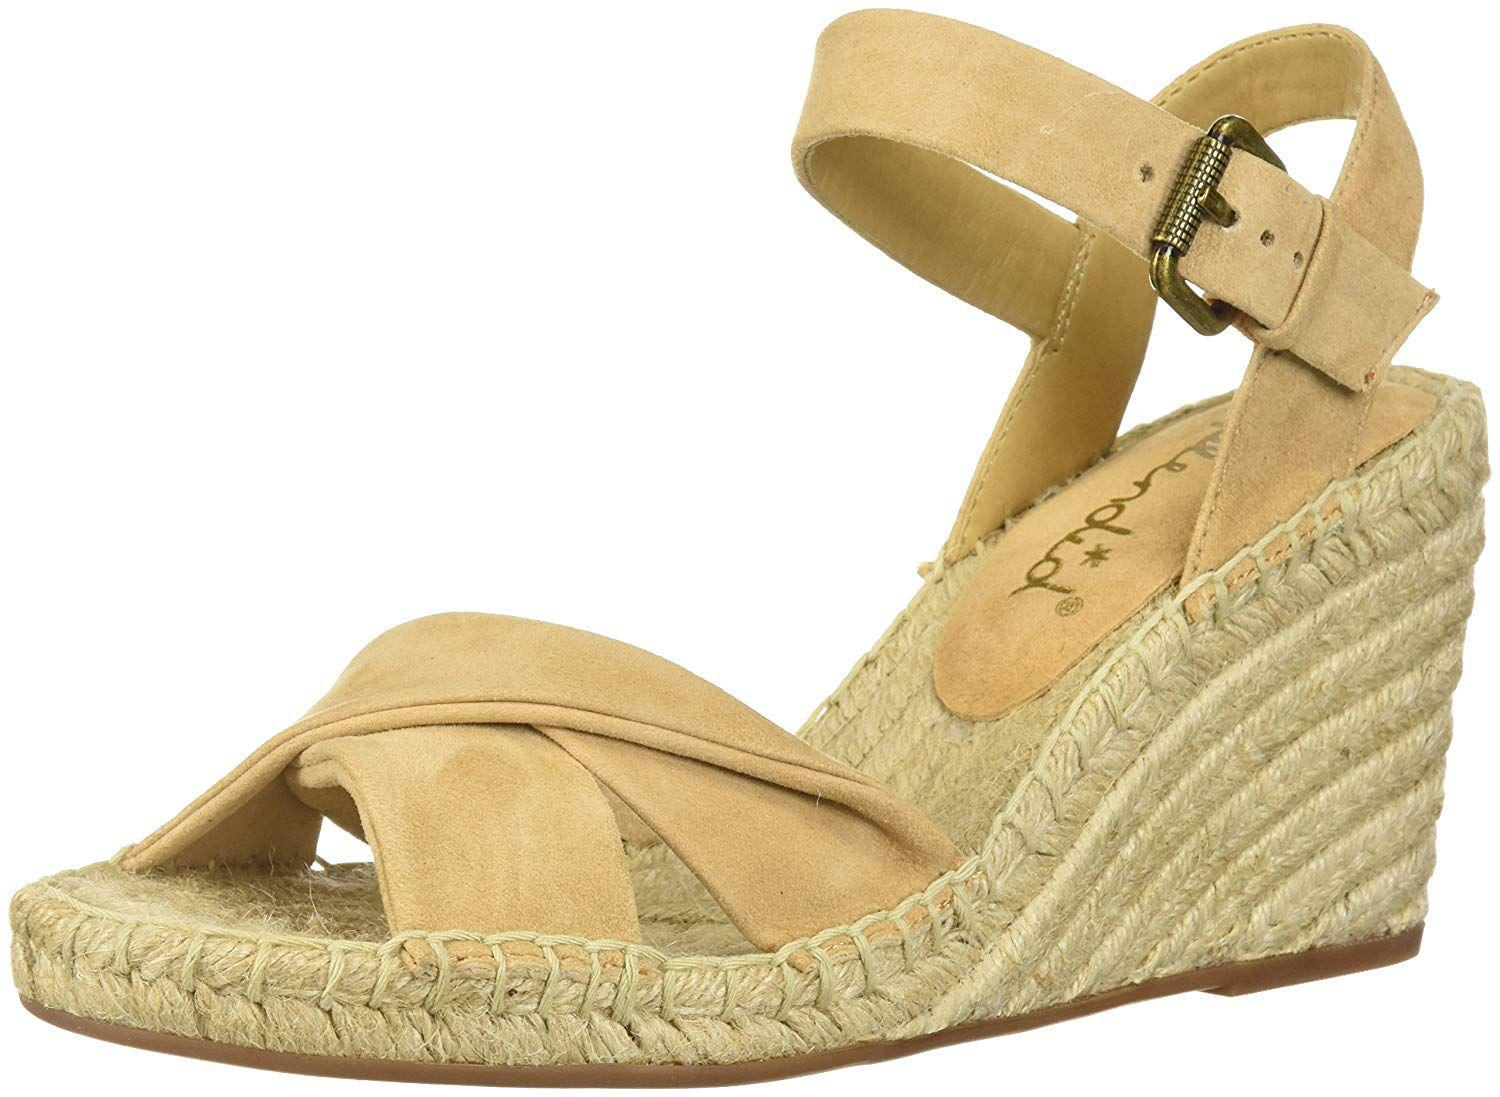 55cb7b379c1c Lyst - Splendid Women s Fairfax Espadrille Wedge Sandal in Brown